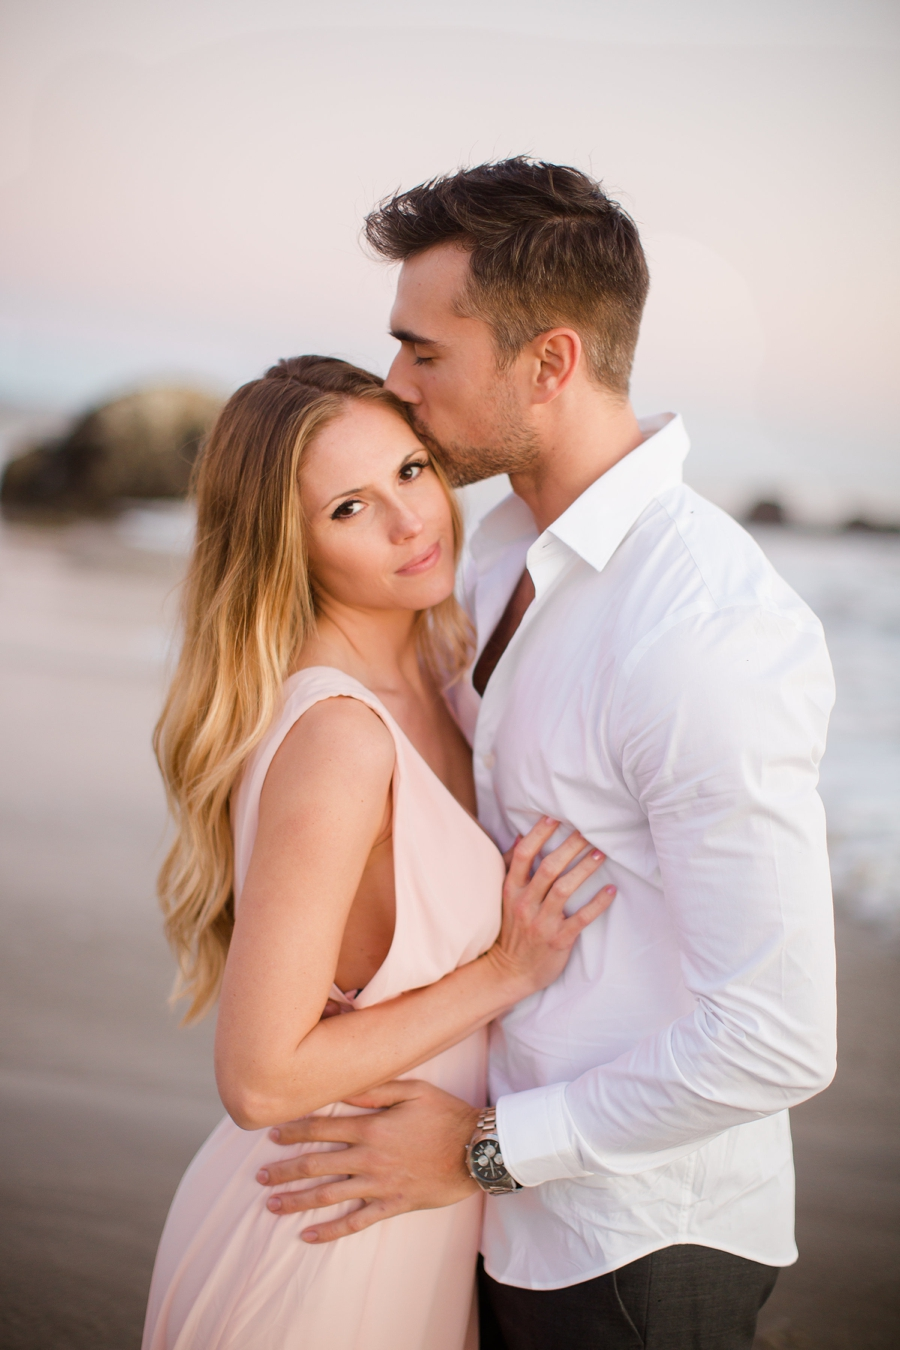 taylor_kinzie_photography_los_angeles_wedding_photographer_beach_engagement_session_0036